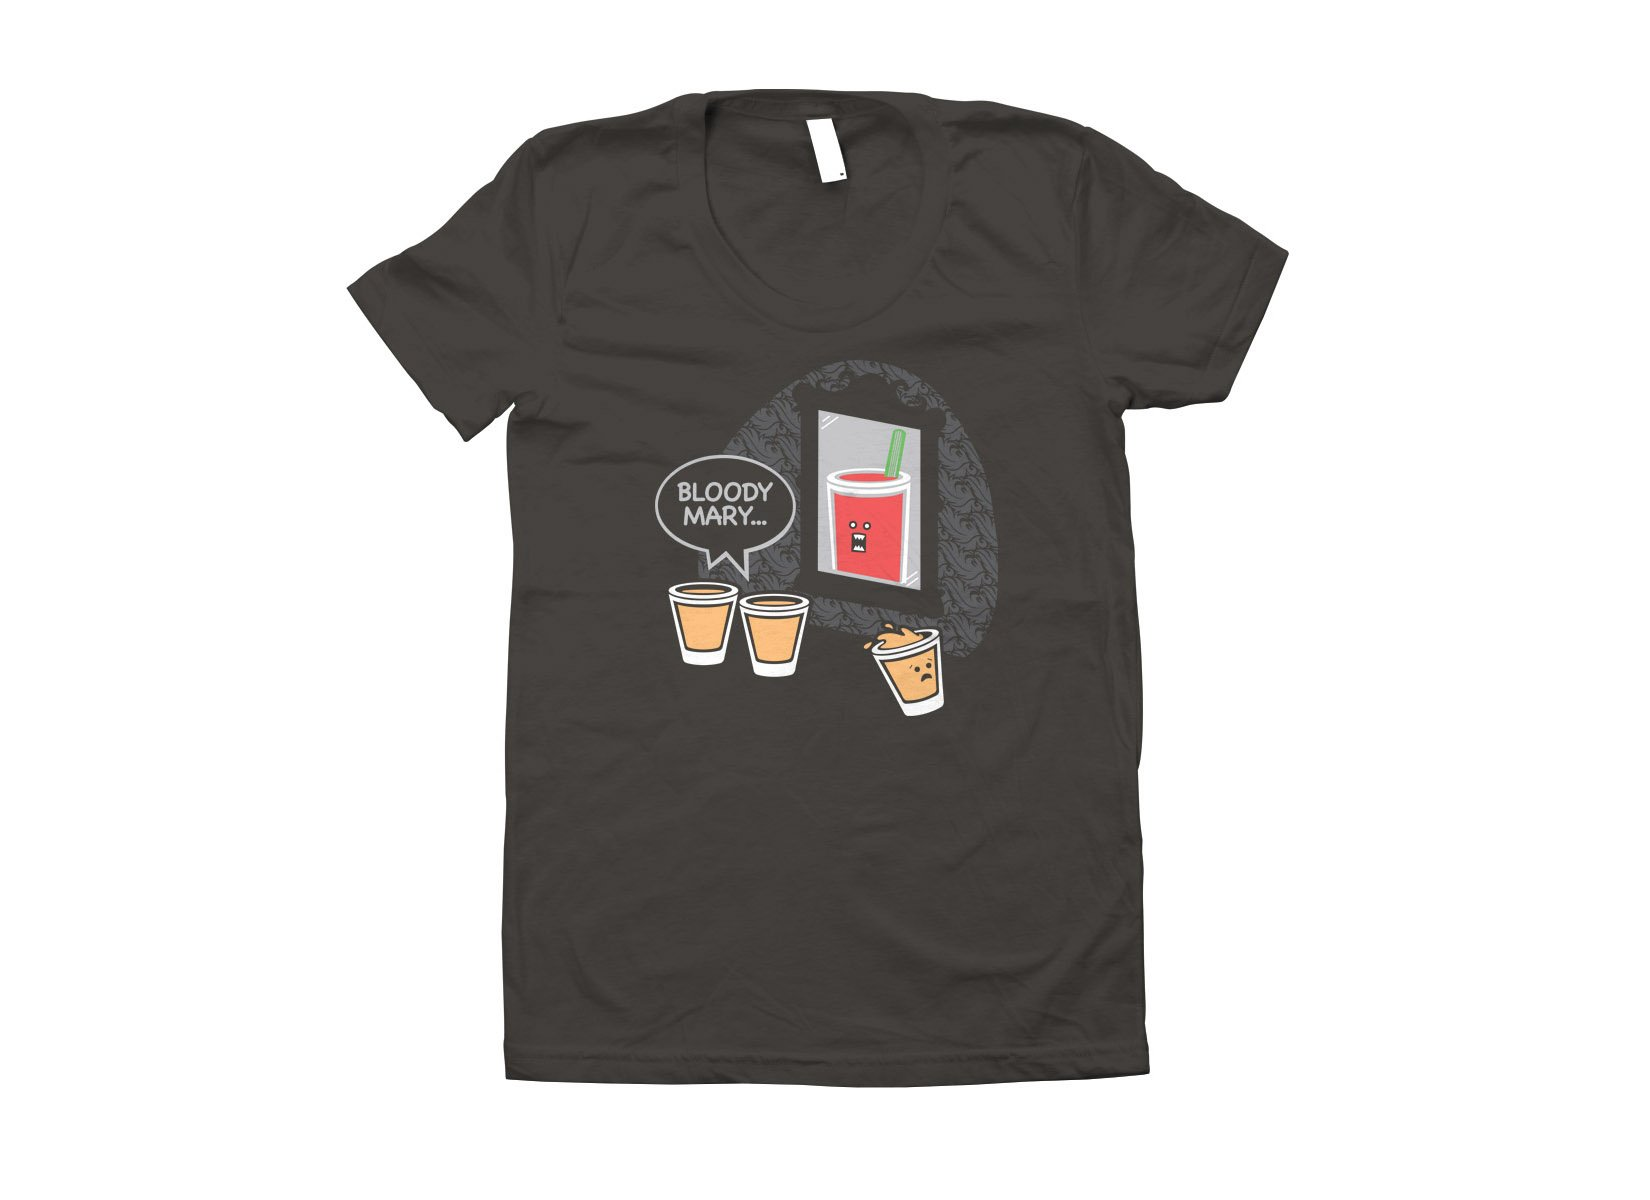 Bloody Mary on Juniors T-Shirt